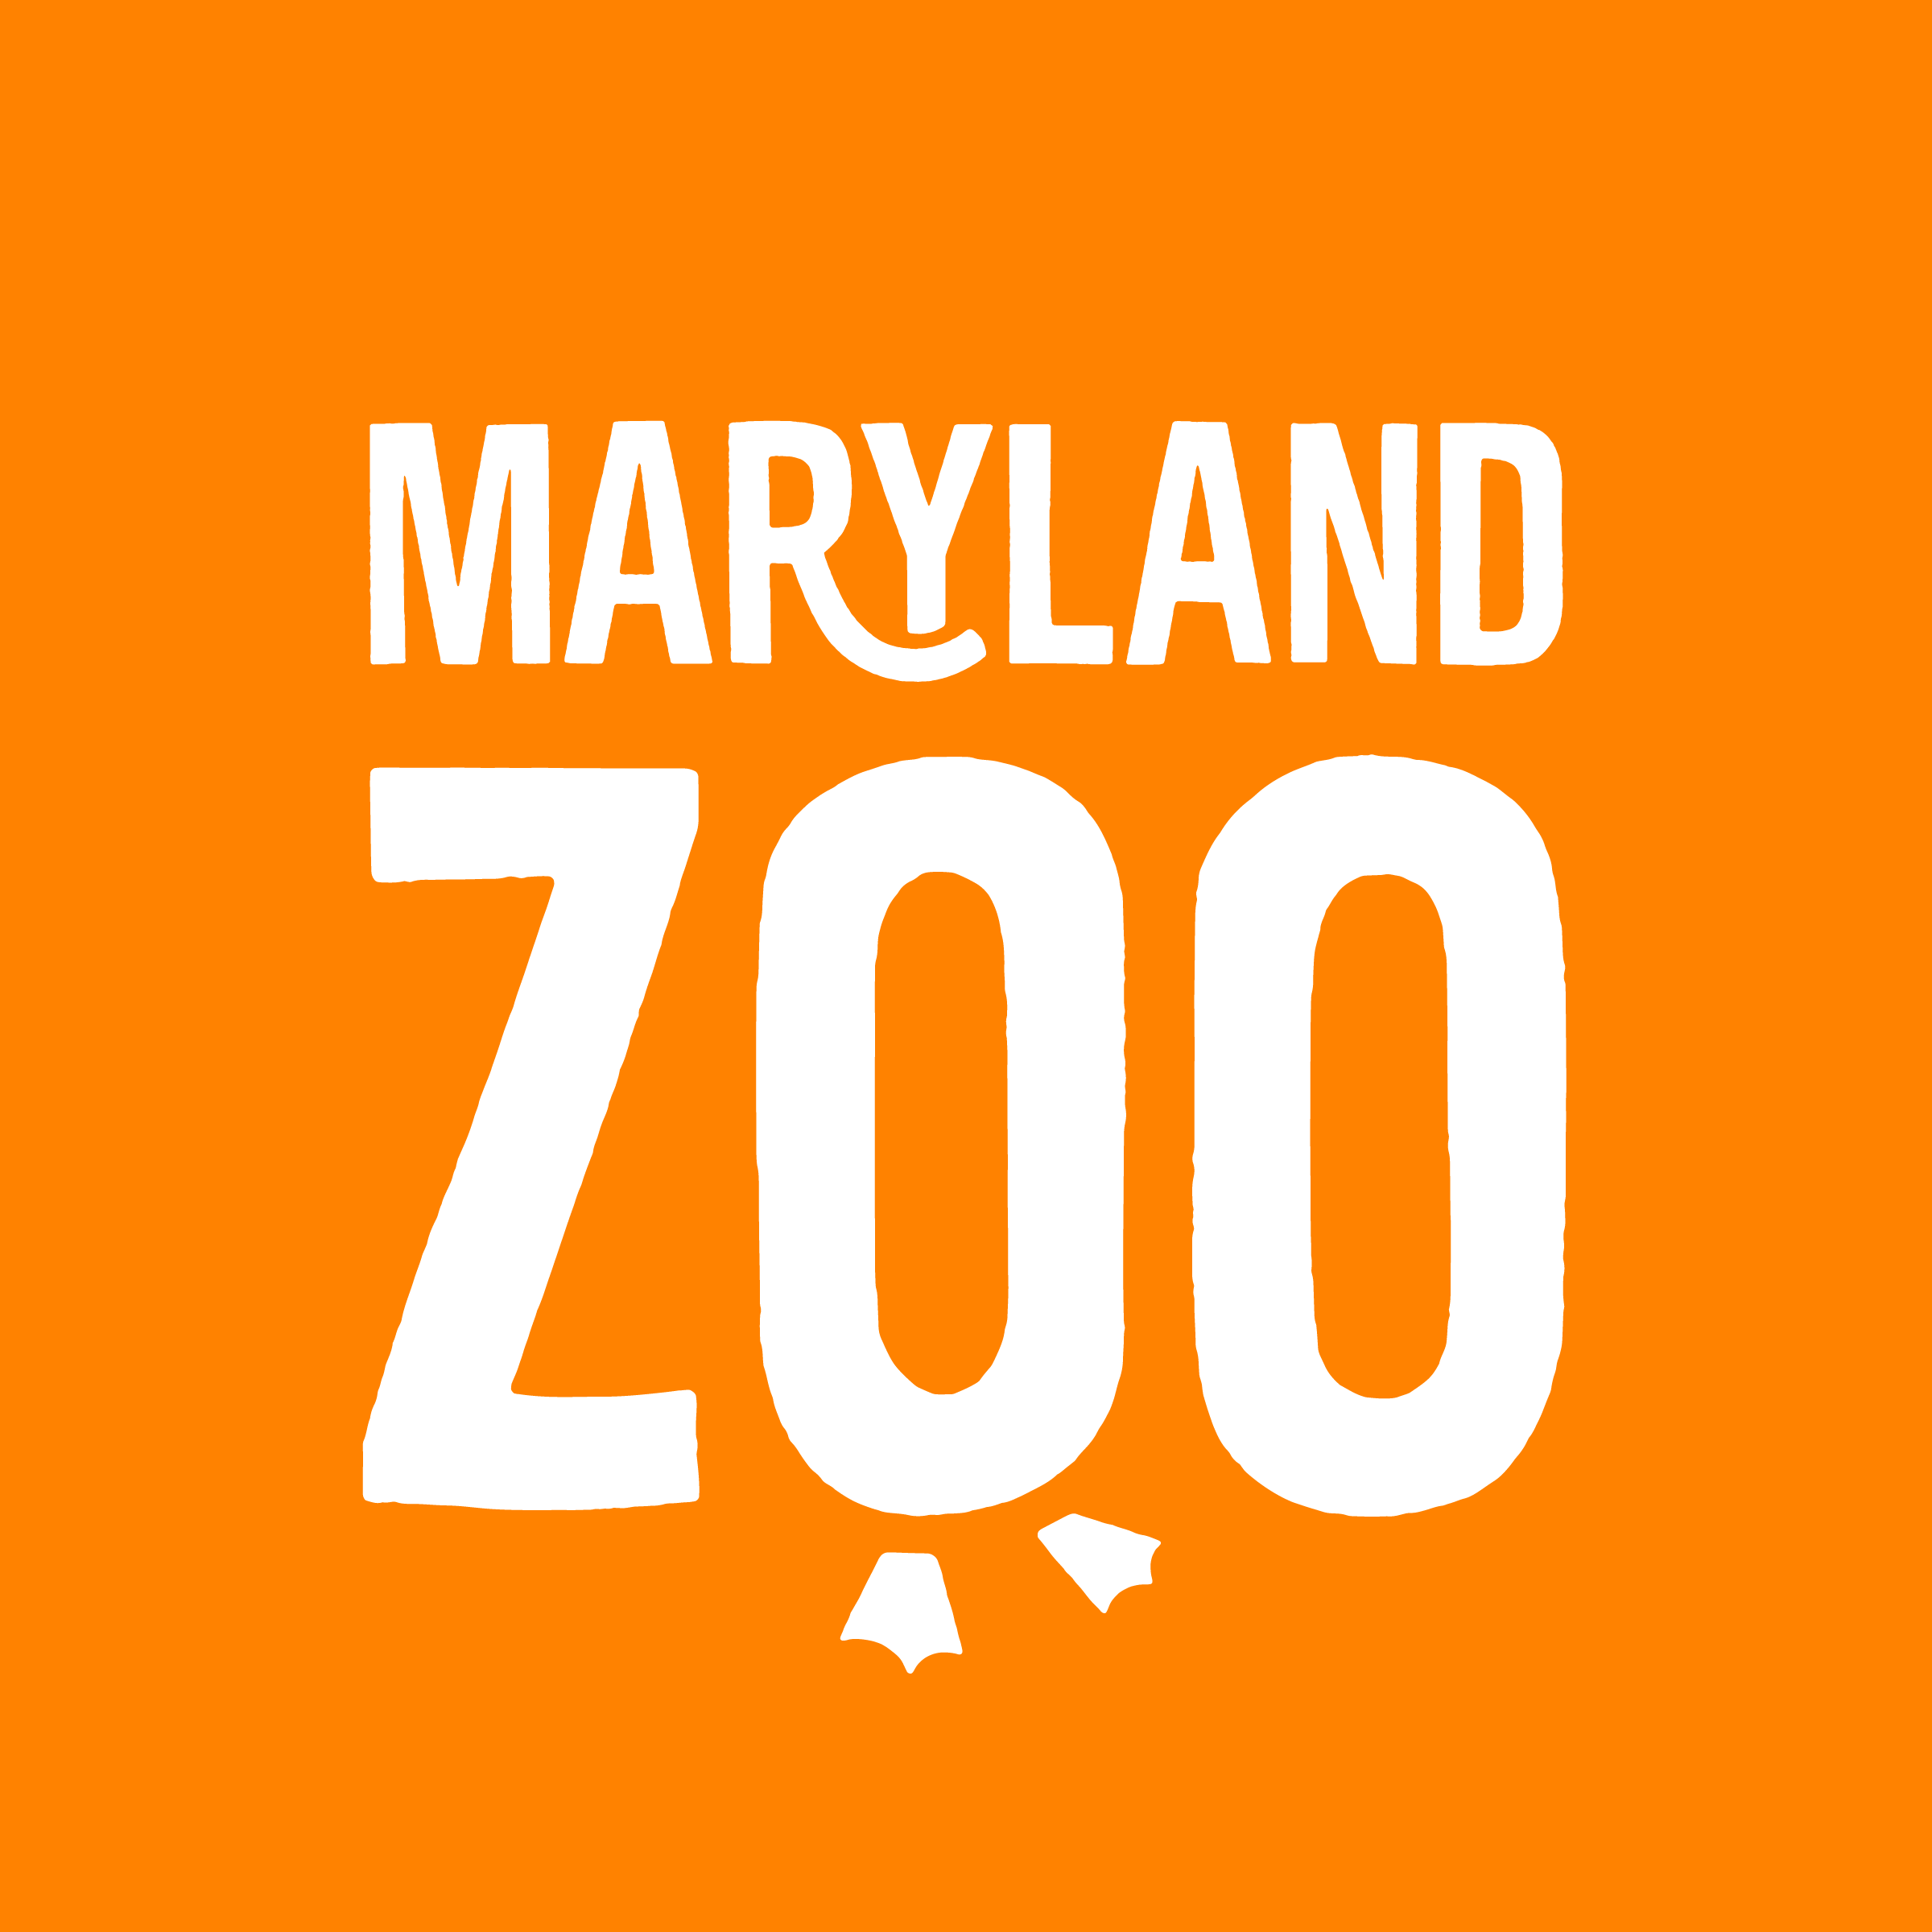 MDZoo_TertiaryLogo_Boxed_WhiteOnOrange-09.png